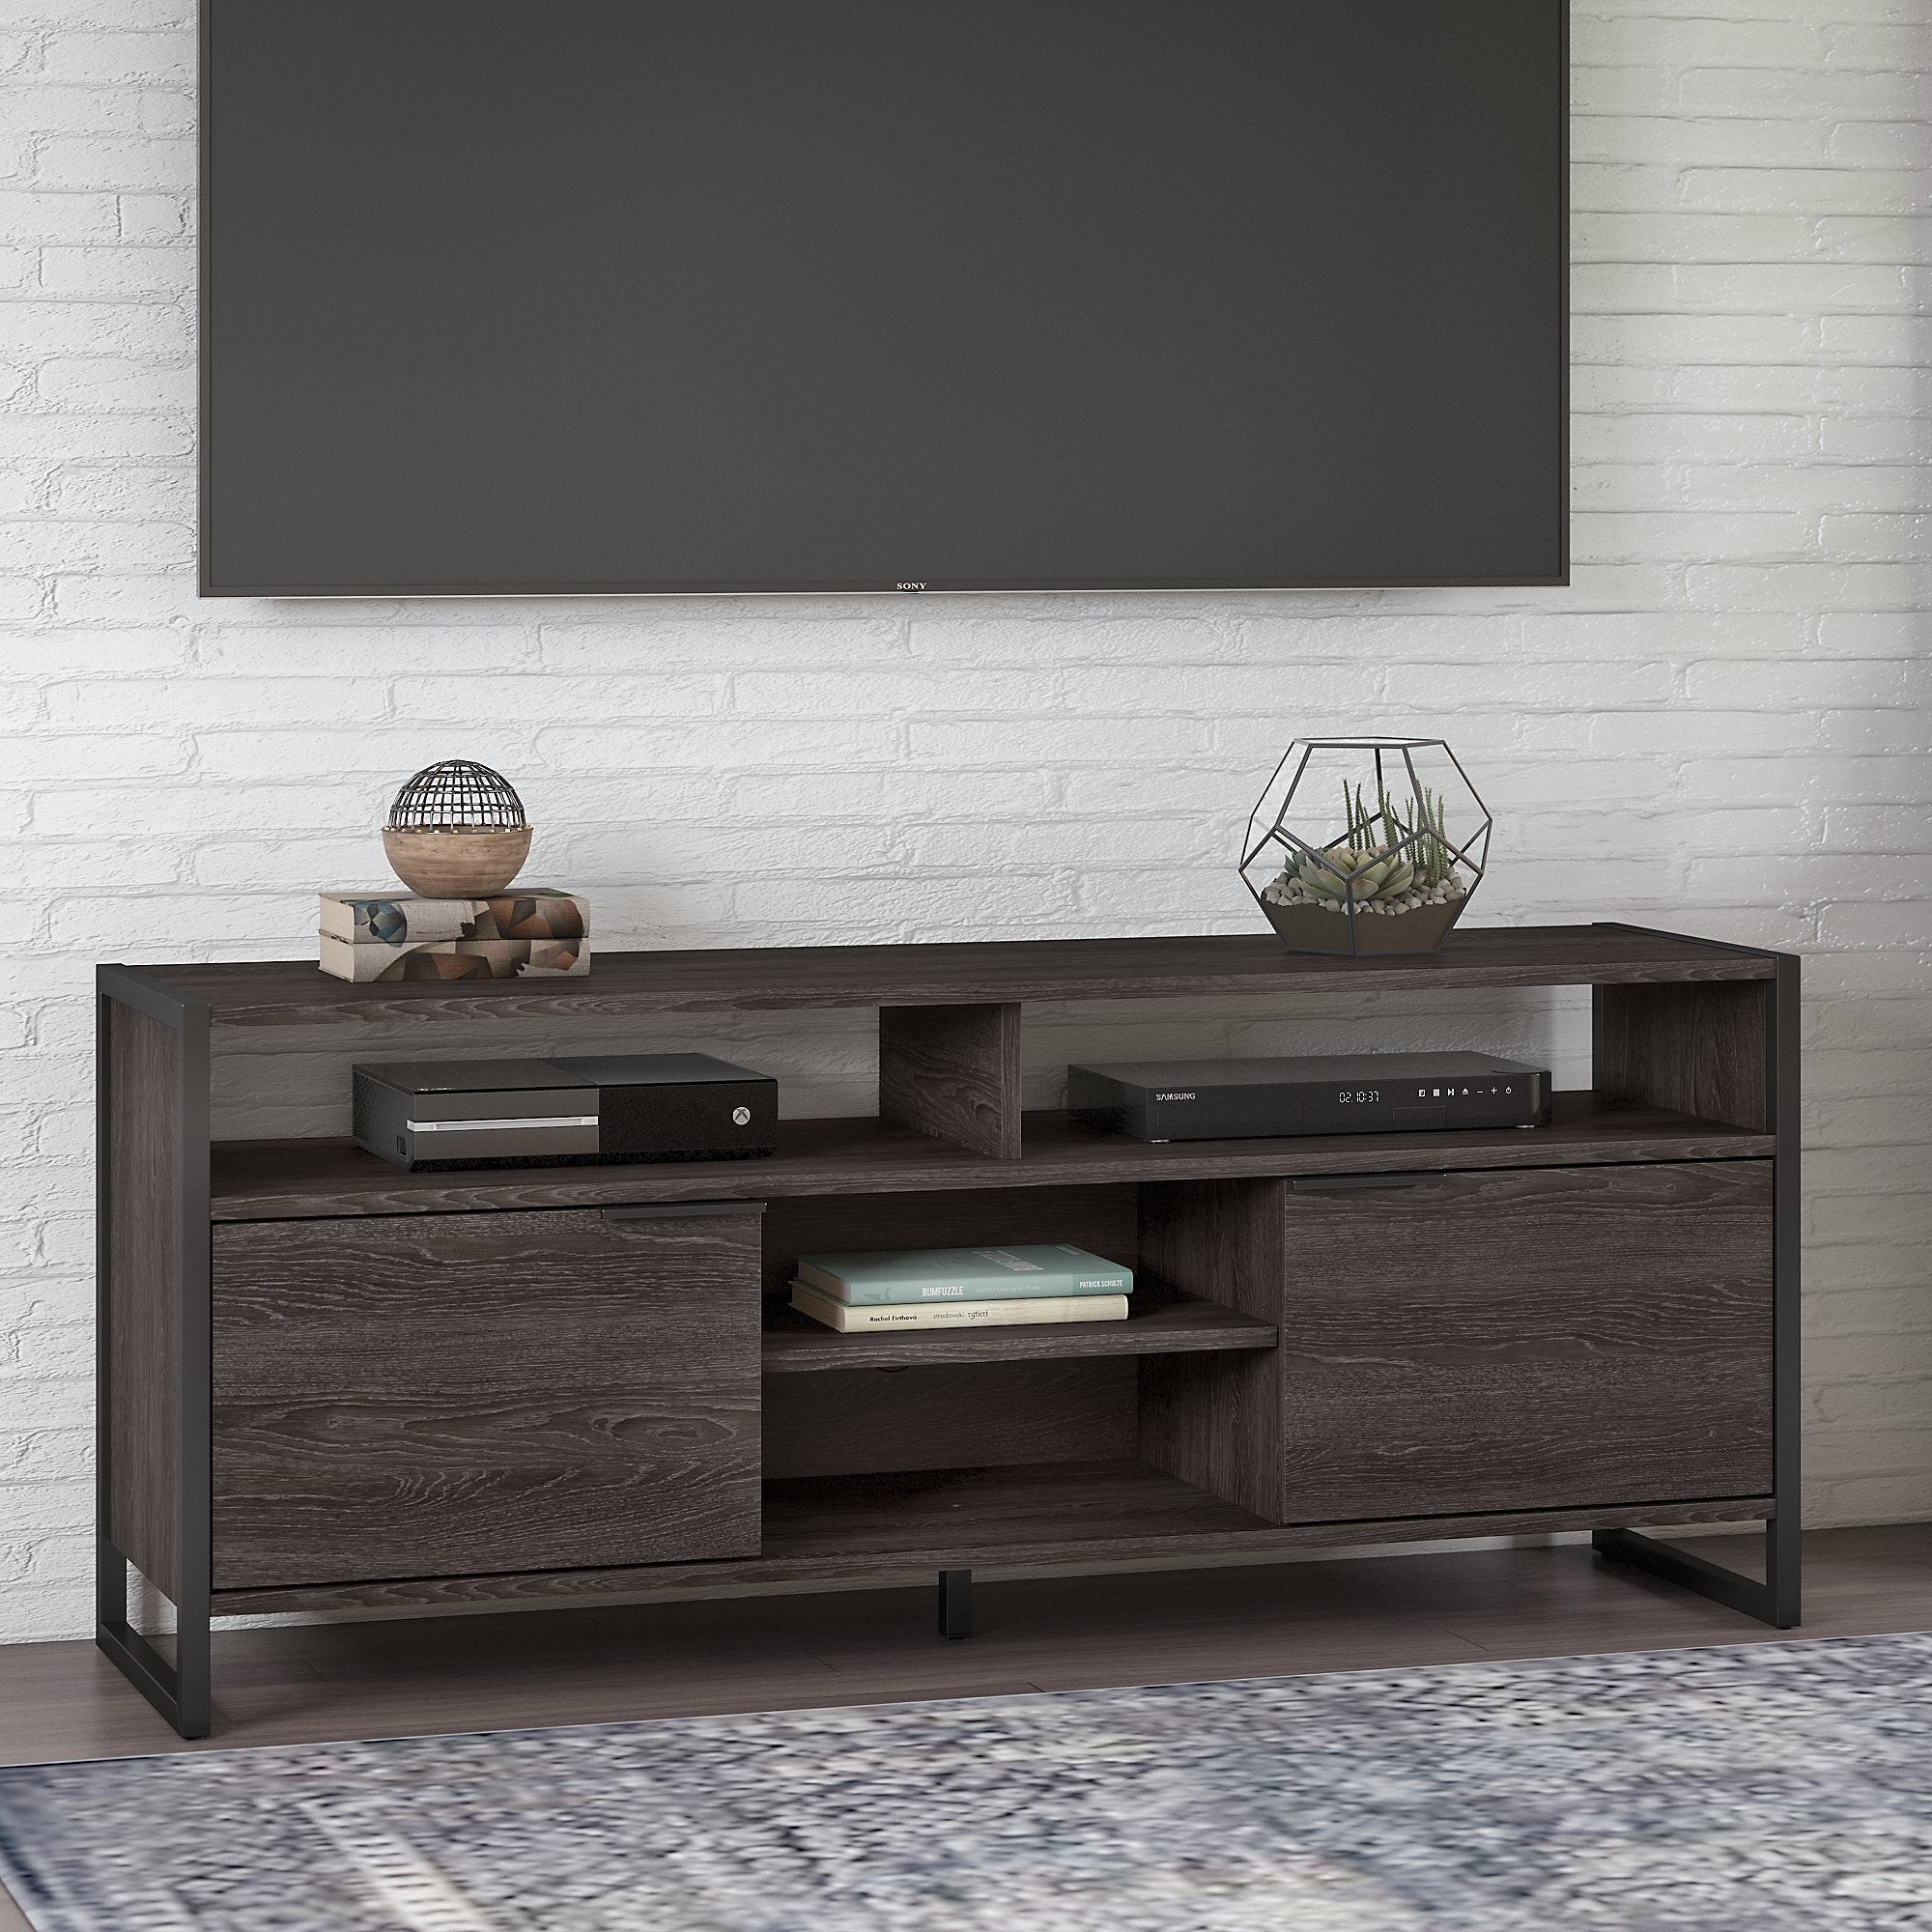 kathy ireland Atria TV Stand for 70 Inch TV